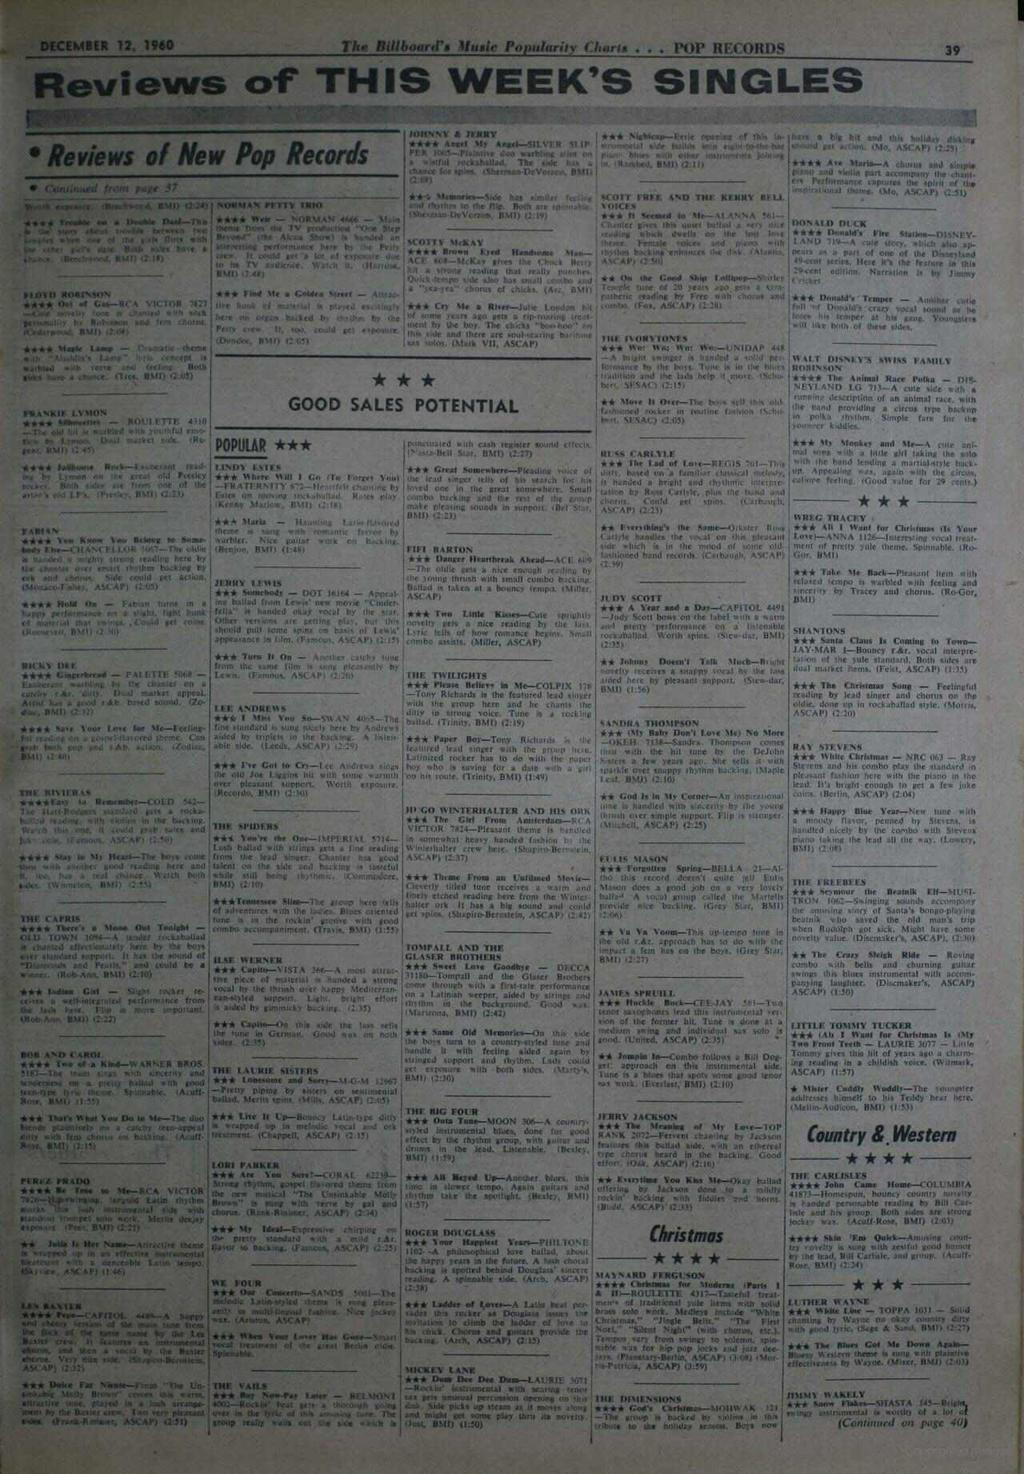 DECEMBER 12, 1960 The Billboard's Music Popularity l:barts... POP RECnRi)S 39 Reviews of THIS WEEK'S SINGLES r Reviews of New Pop Records r.,suinased tren part 37 }.,. rsrware,. tl/ttafi..ocd.